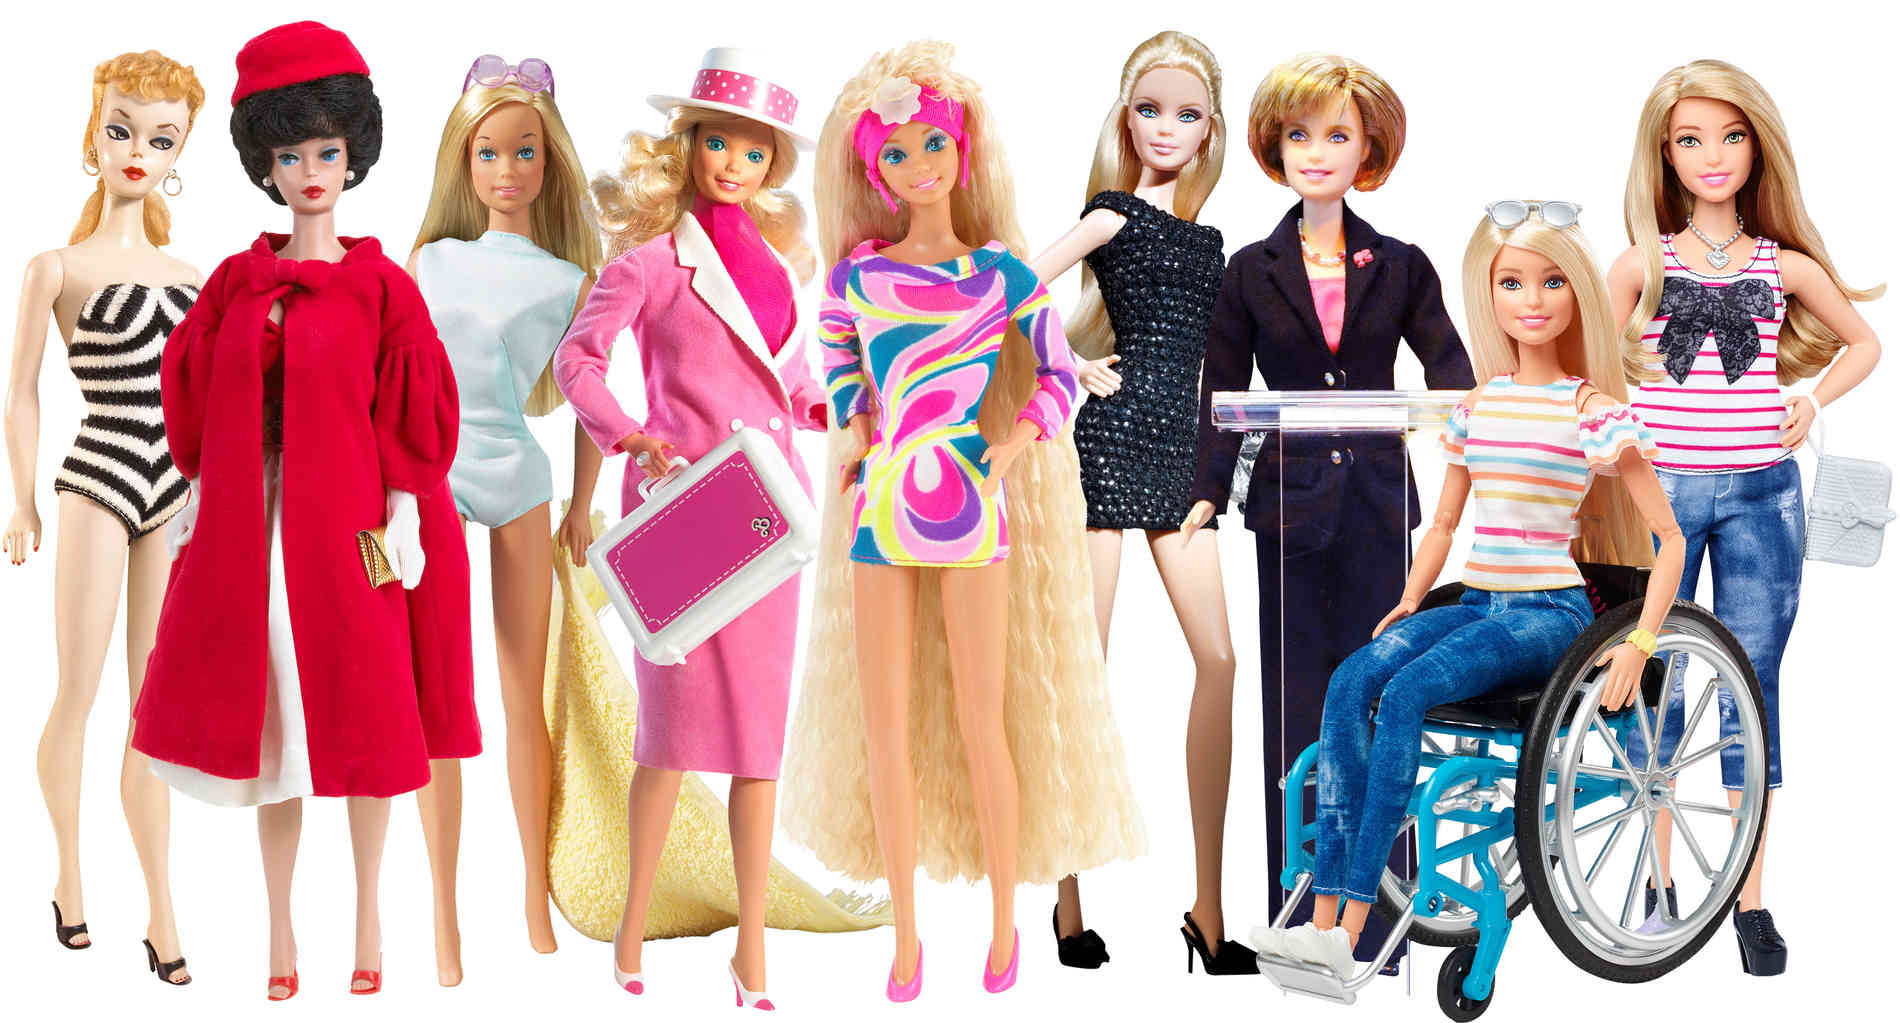 Trash Tussi Pink Barbie Wird 60 Evergreen Von Mattel